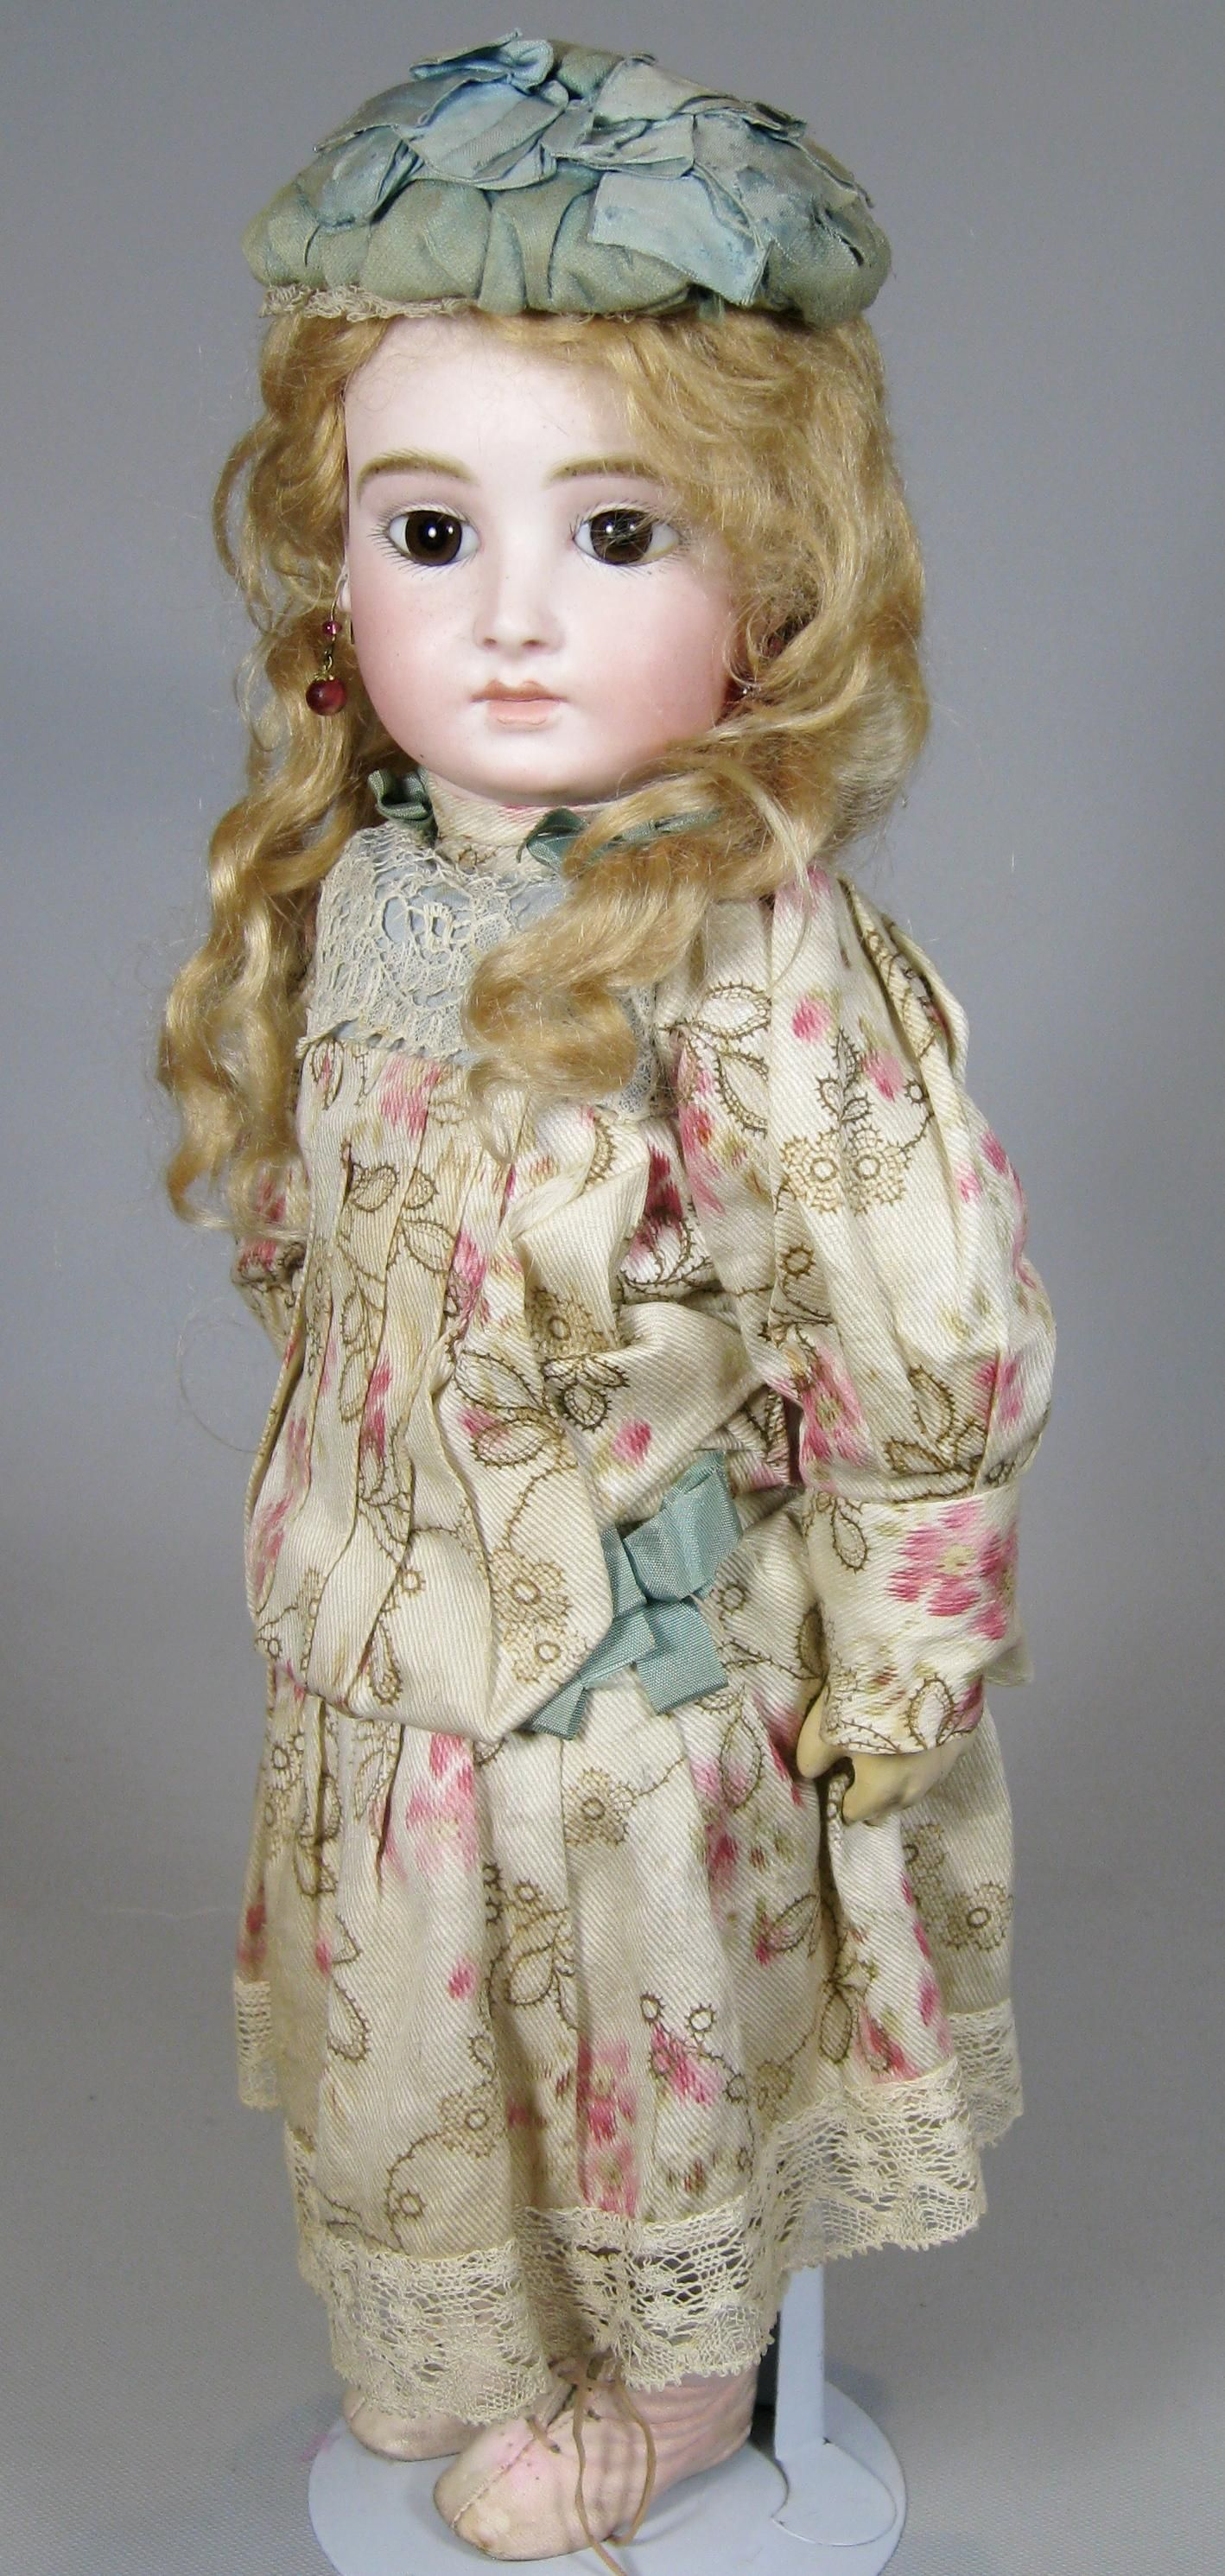 Rare French Halopeau Closed Mouth Bebe ~ UFDC Blue Ribbon Winner 2015 from victoriasdollhouse on Ruby Lane